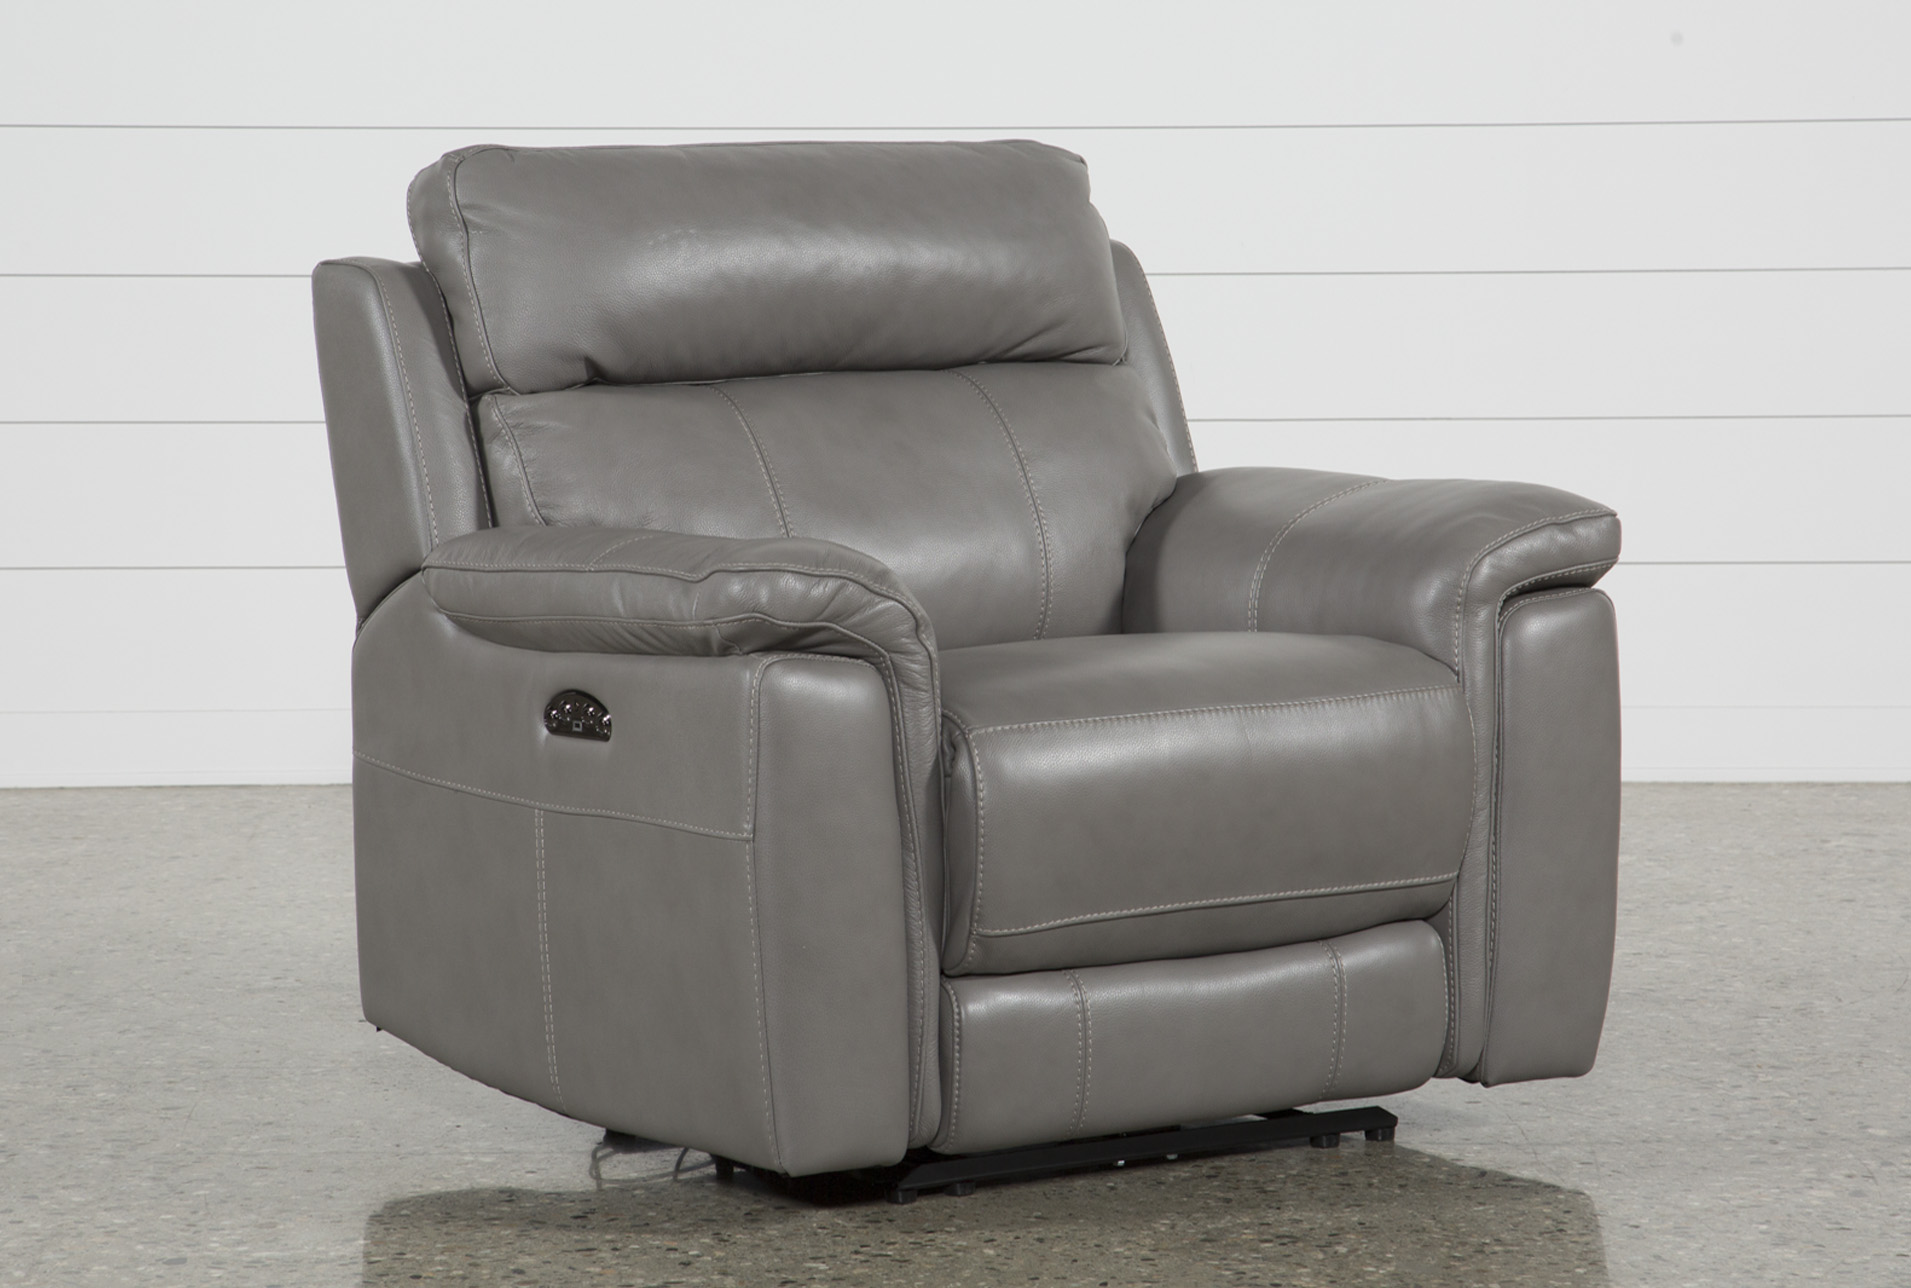 Dino Grey Leather Power Recliner W/Power Headrest & Usb (Qty: 1) has  been successfully added to your Cart.